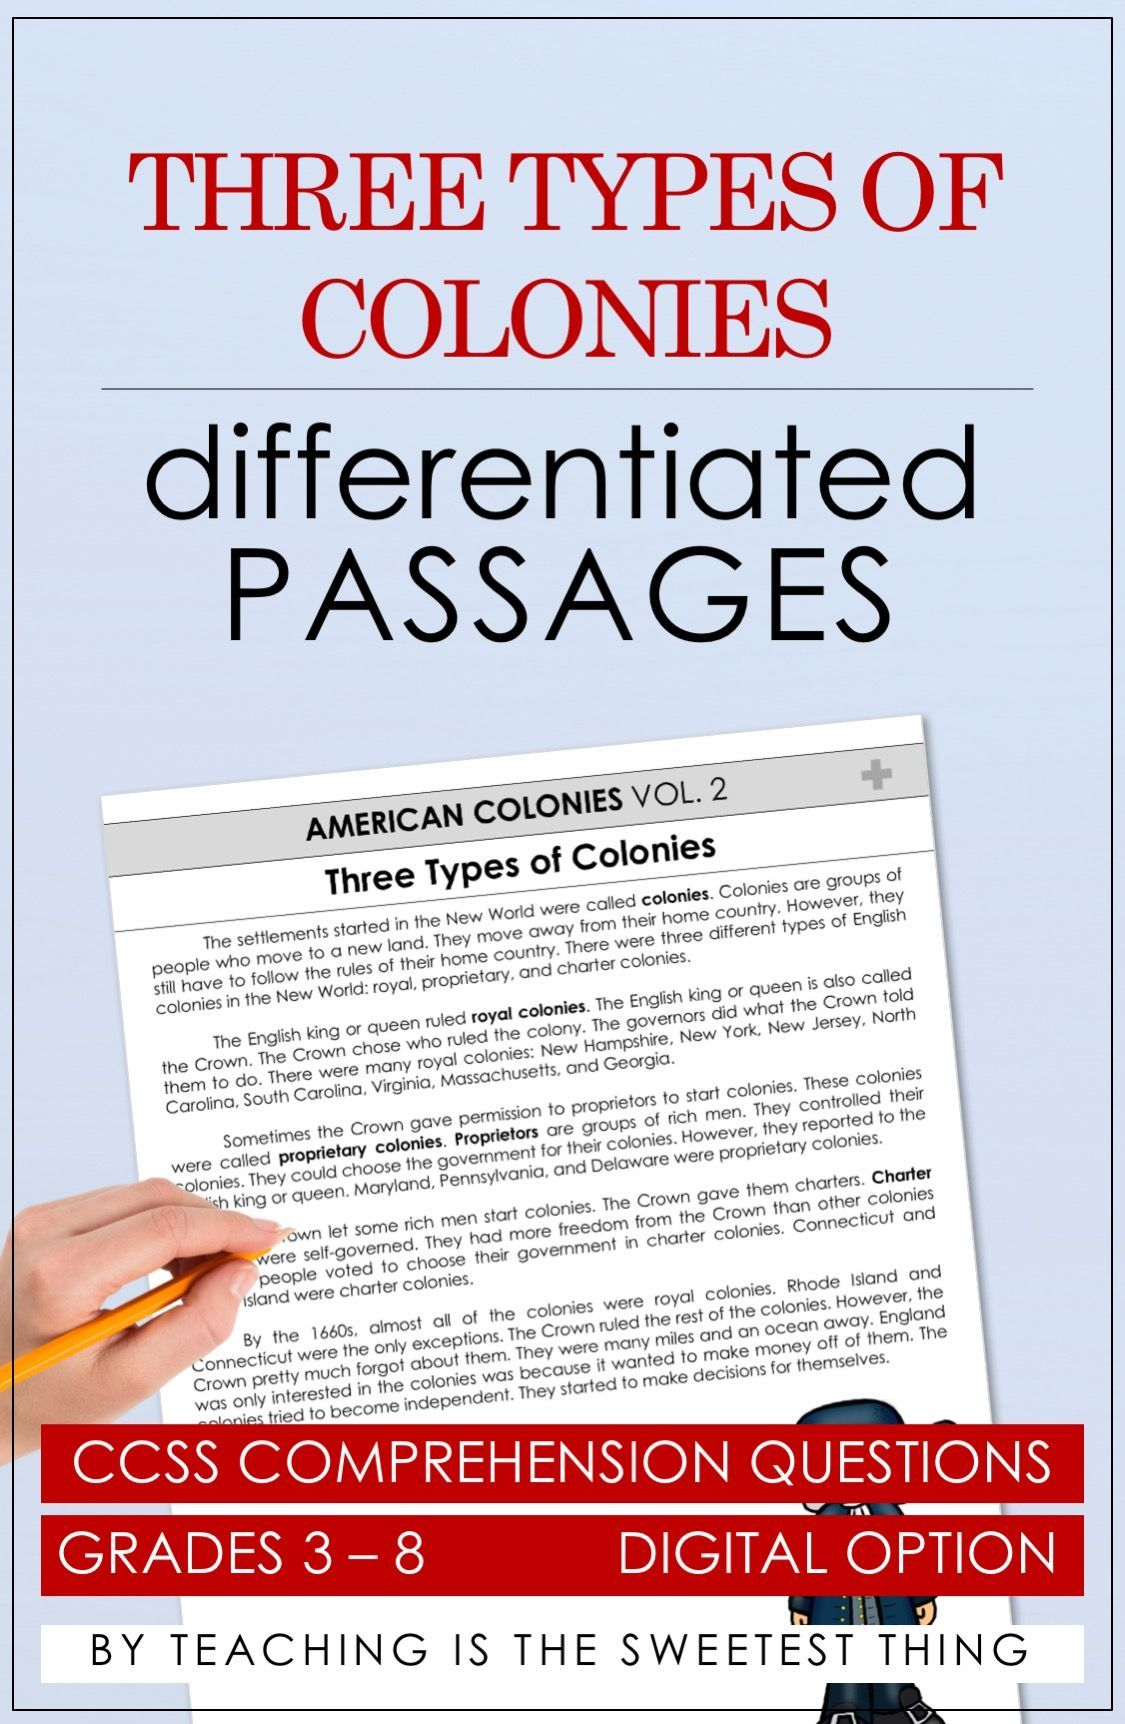 Miles And More Questions American Colonies Passages Vol 2 Grades 8 9 And 10 English